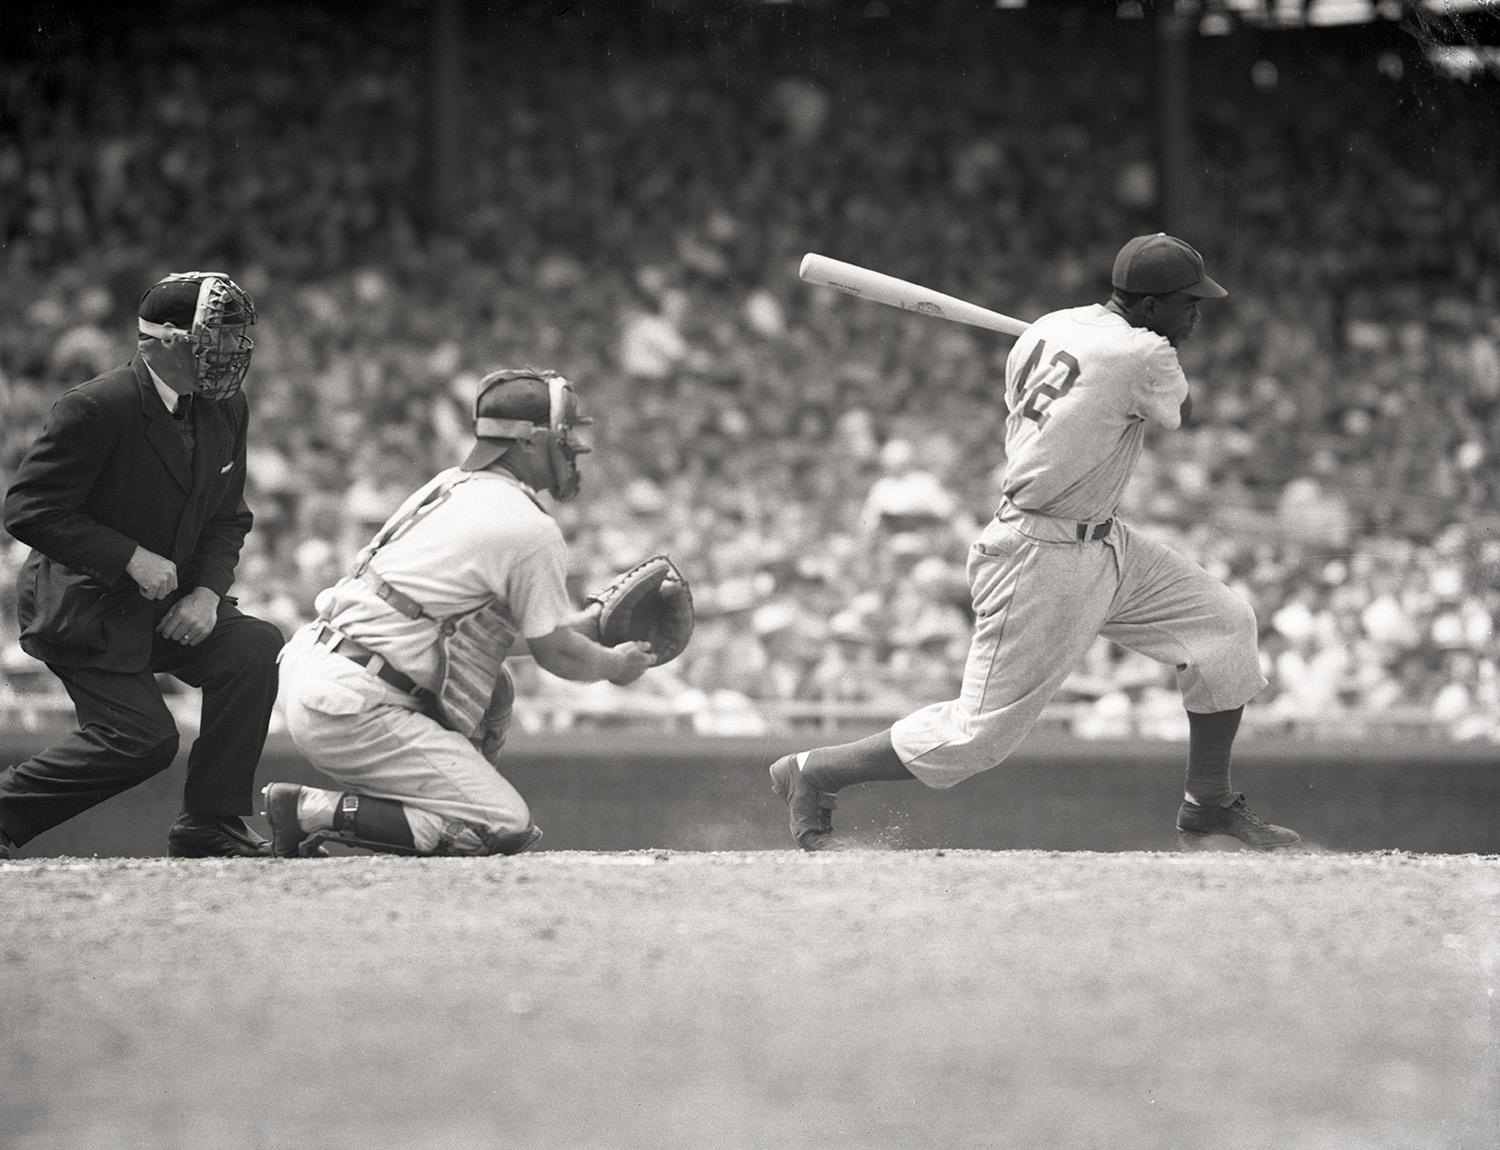 """Jackie Robinson, pictured above,  inspired Emmett Ashford to pursue umpiring after Robinson broke baseball's color barrier in 1947. <a href=""""http://collection.baseballhall.org/islandora/object/islandora%3A323858"""">PASTIME</a> (National Baseball Hall of Fame and Museum)"""